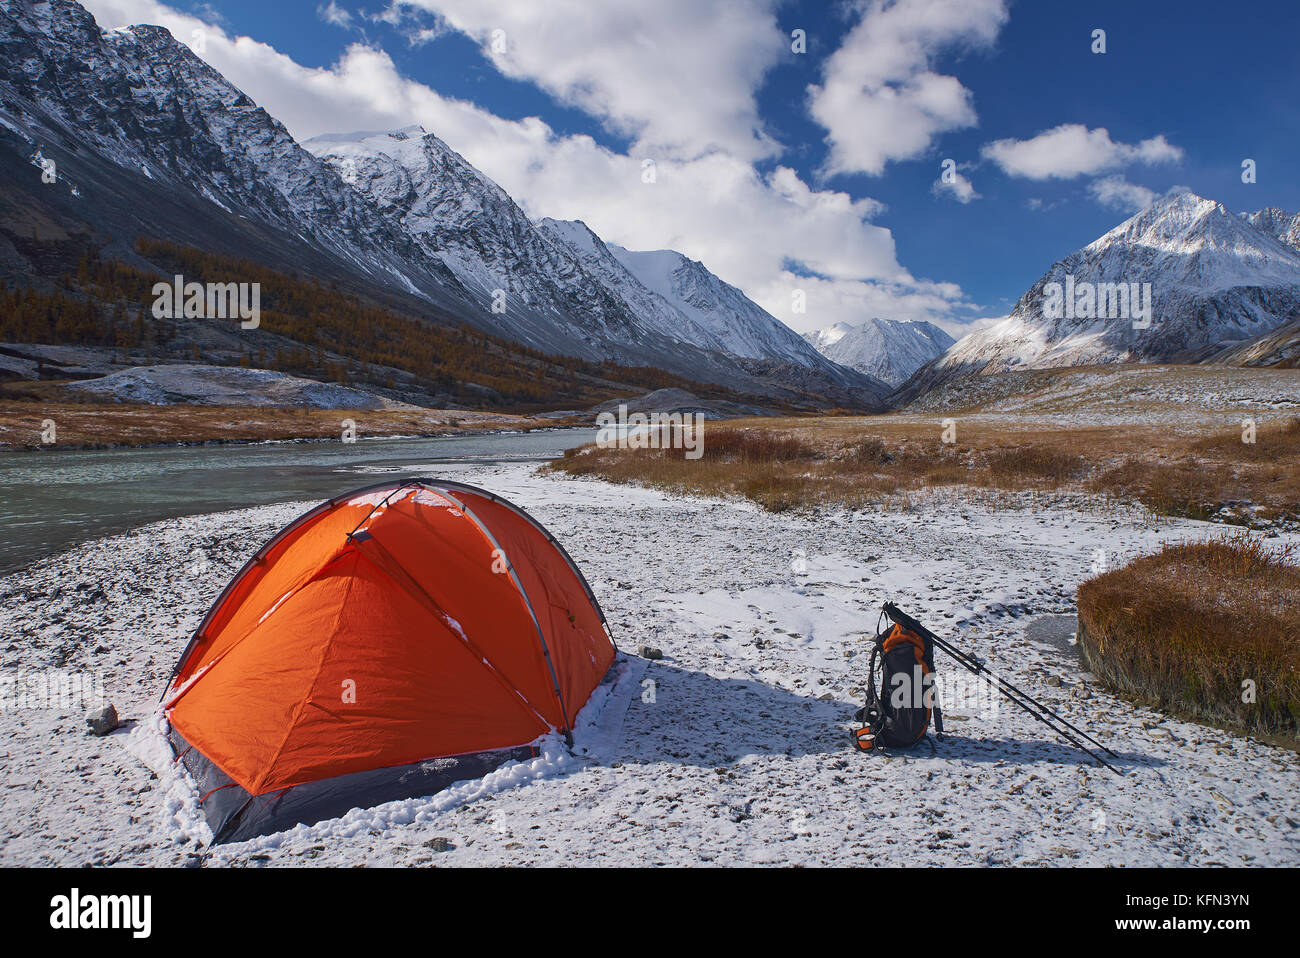 Campsite and Tent with backpack in the Mountains - Stock Image